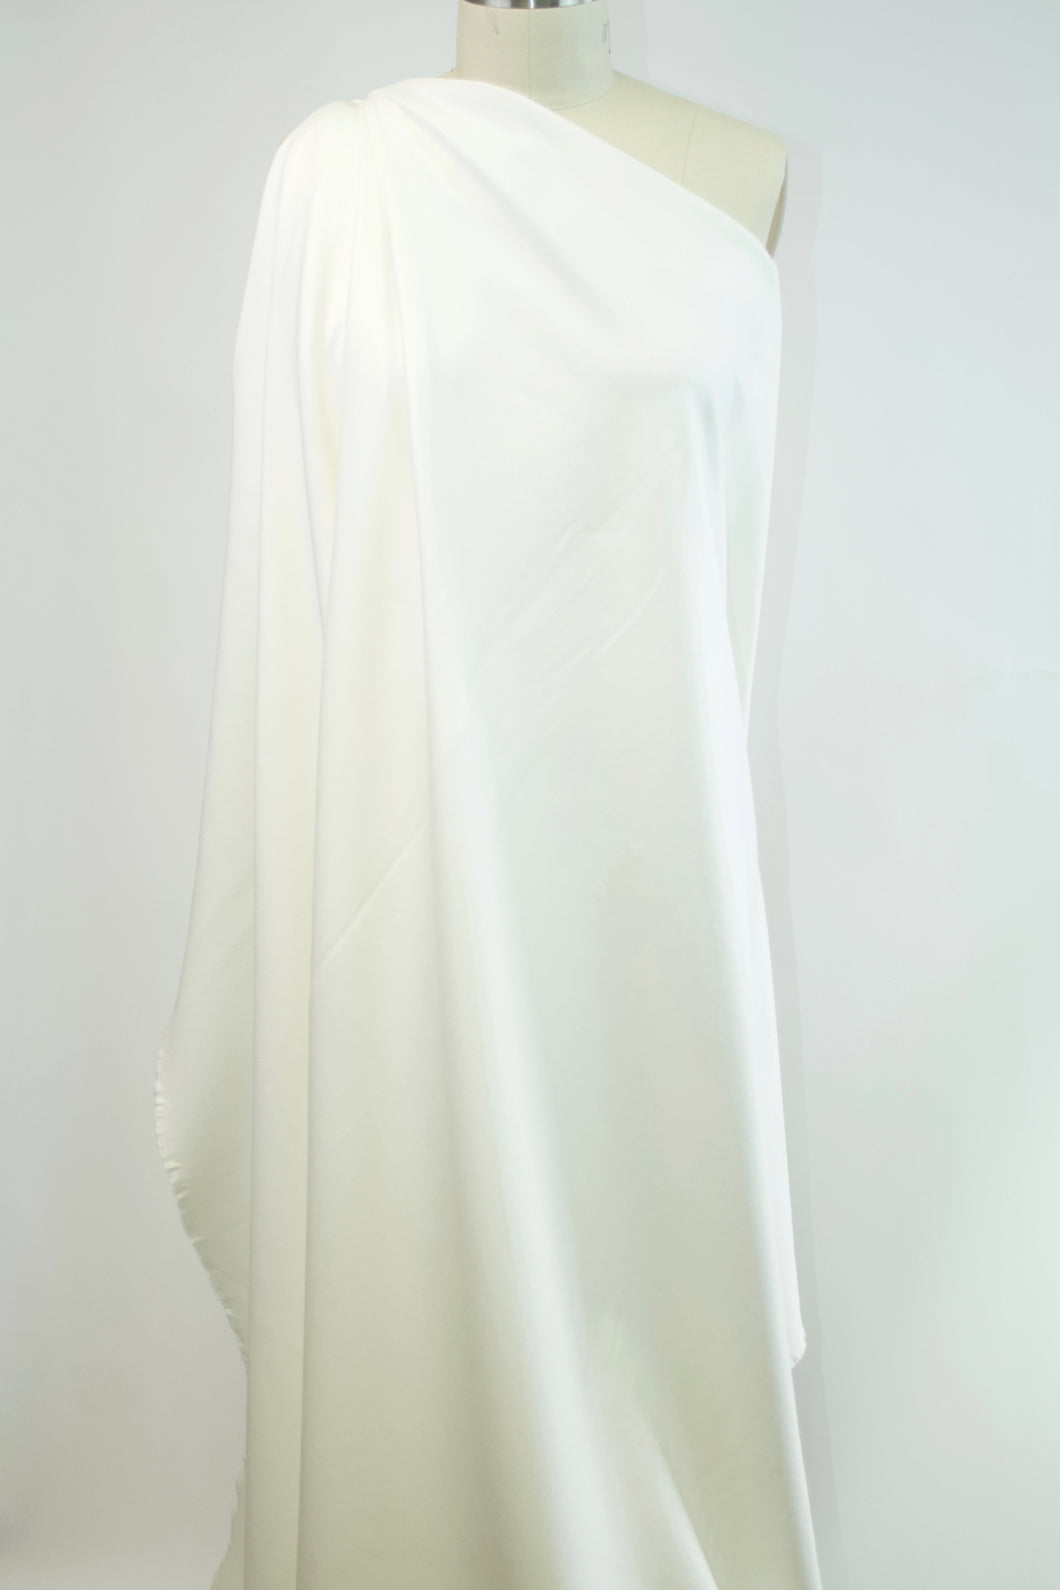 Designer Rayon Double Knit - Off-White